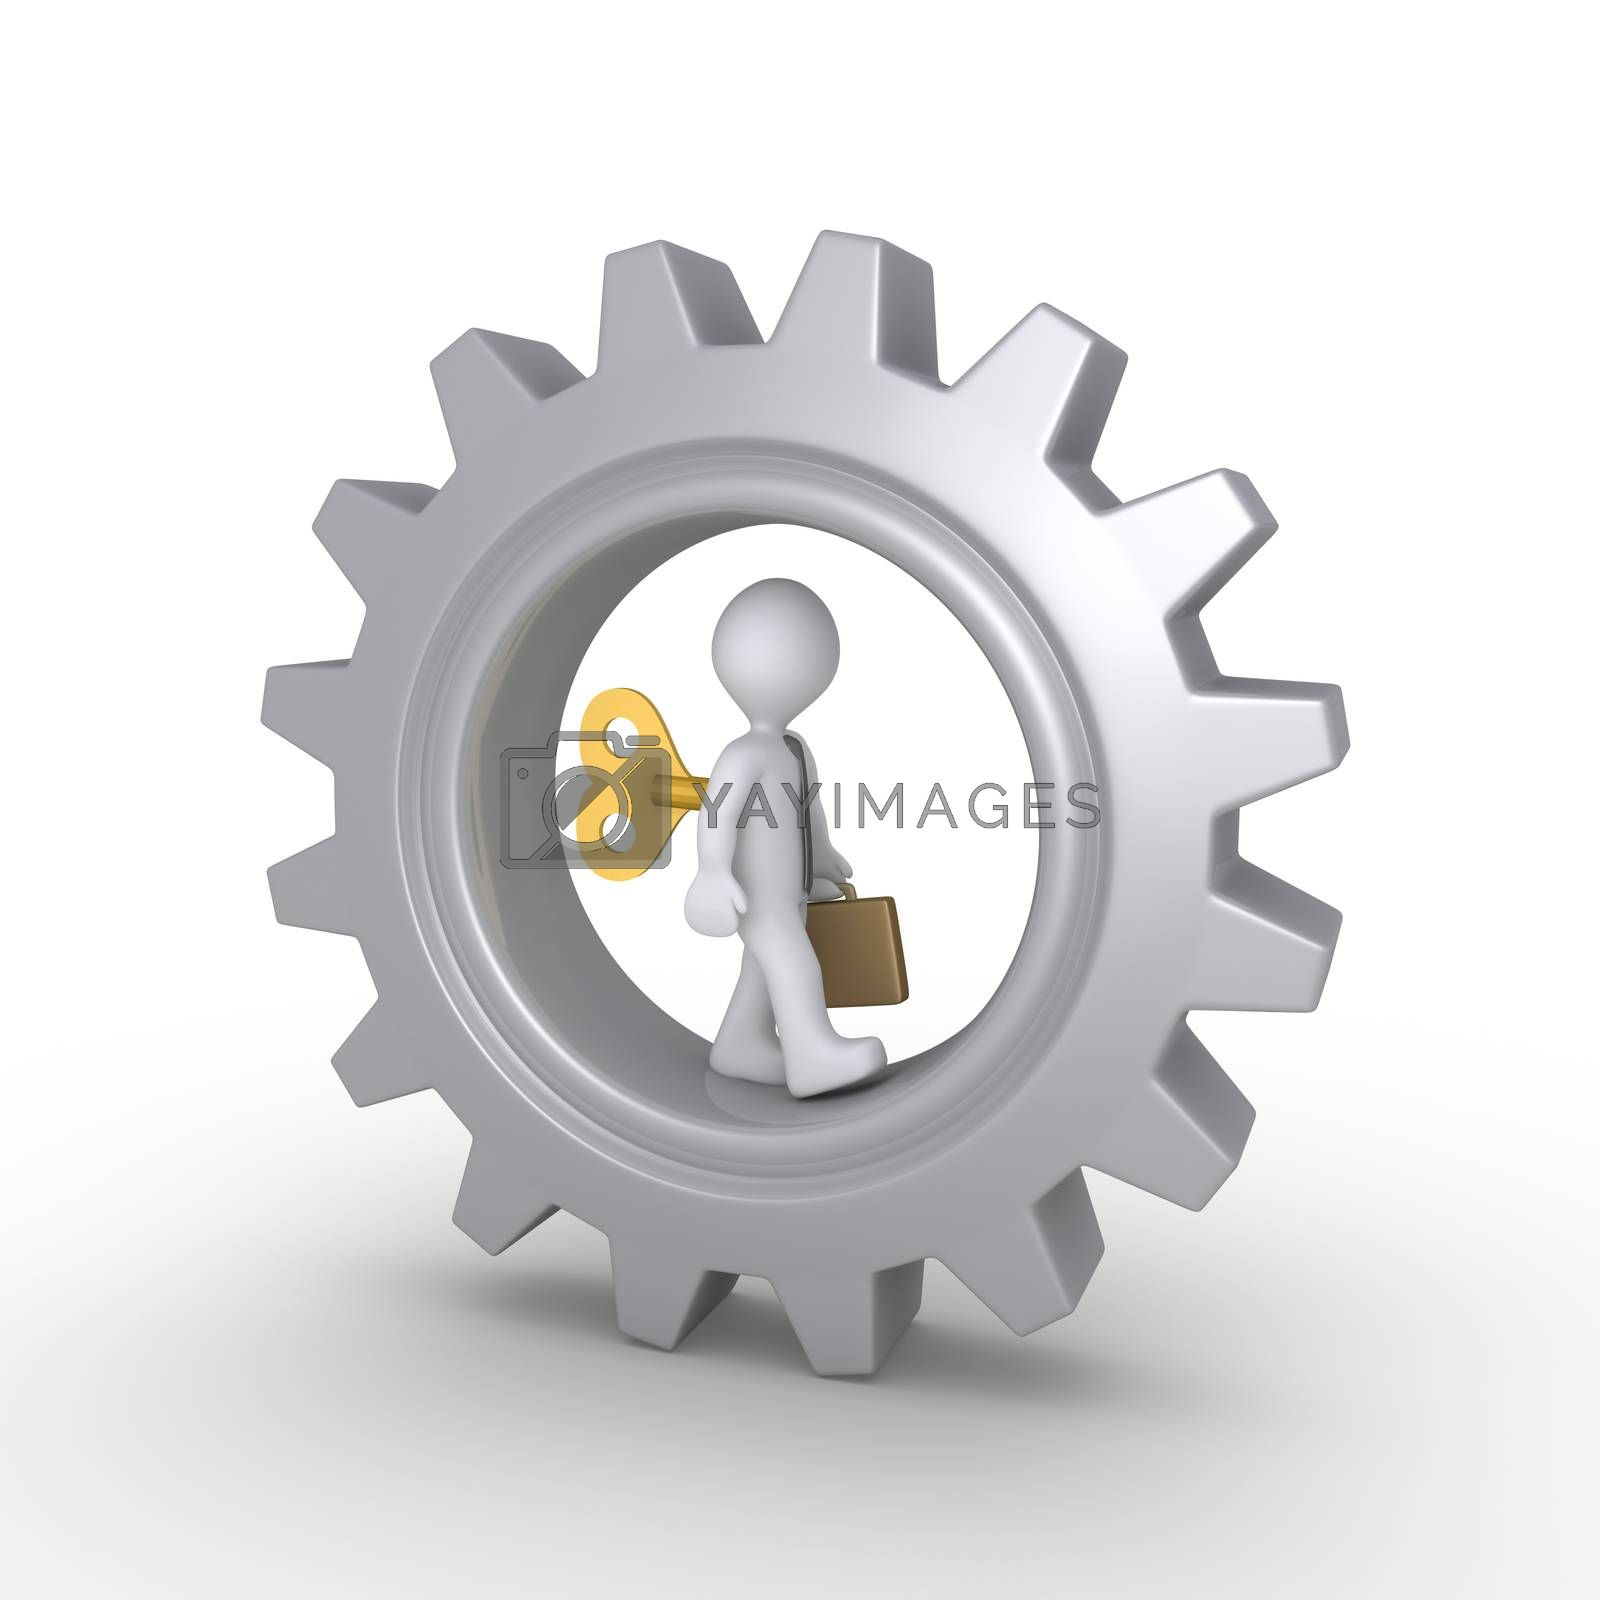 Businessman is wound up and walking inside a cogwheel